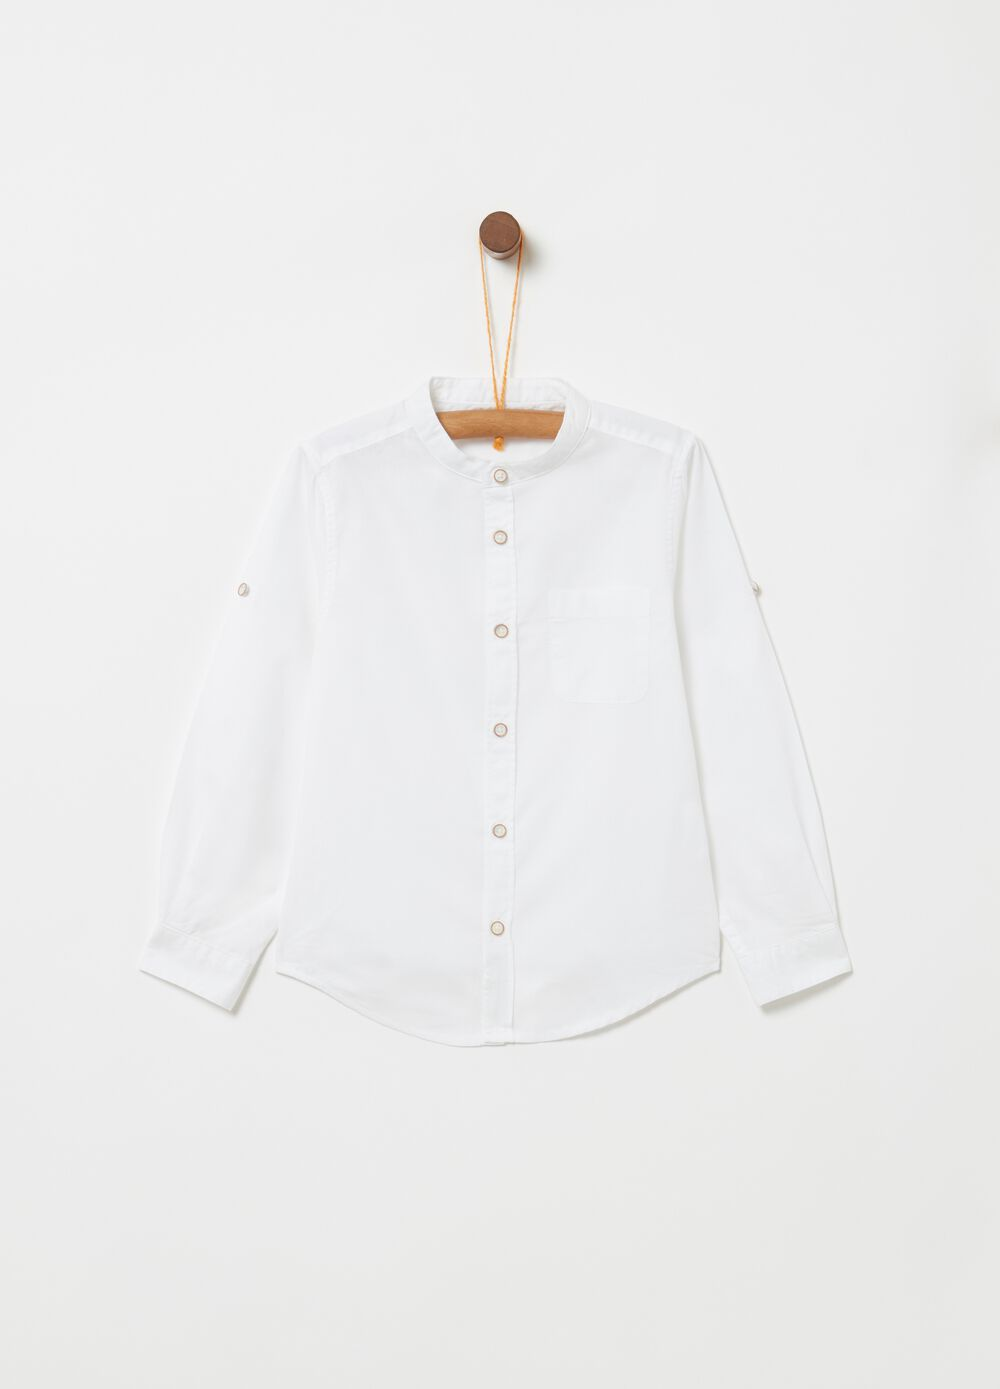 100% cotton shirt with pocket